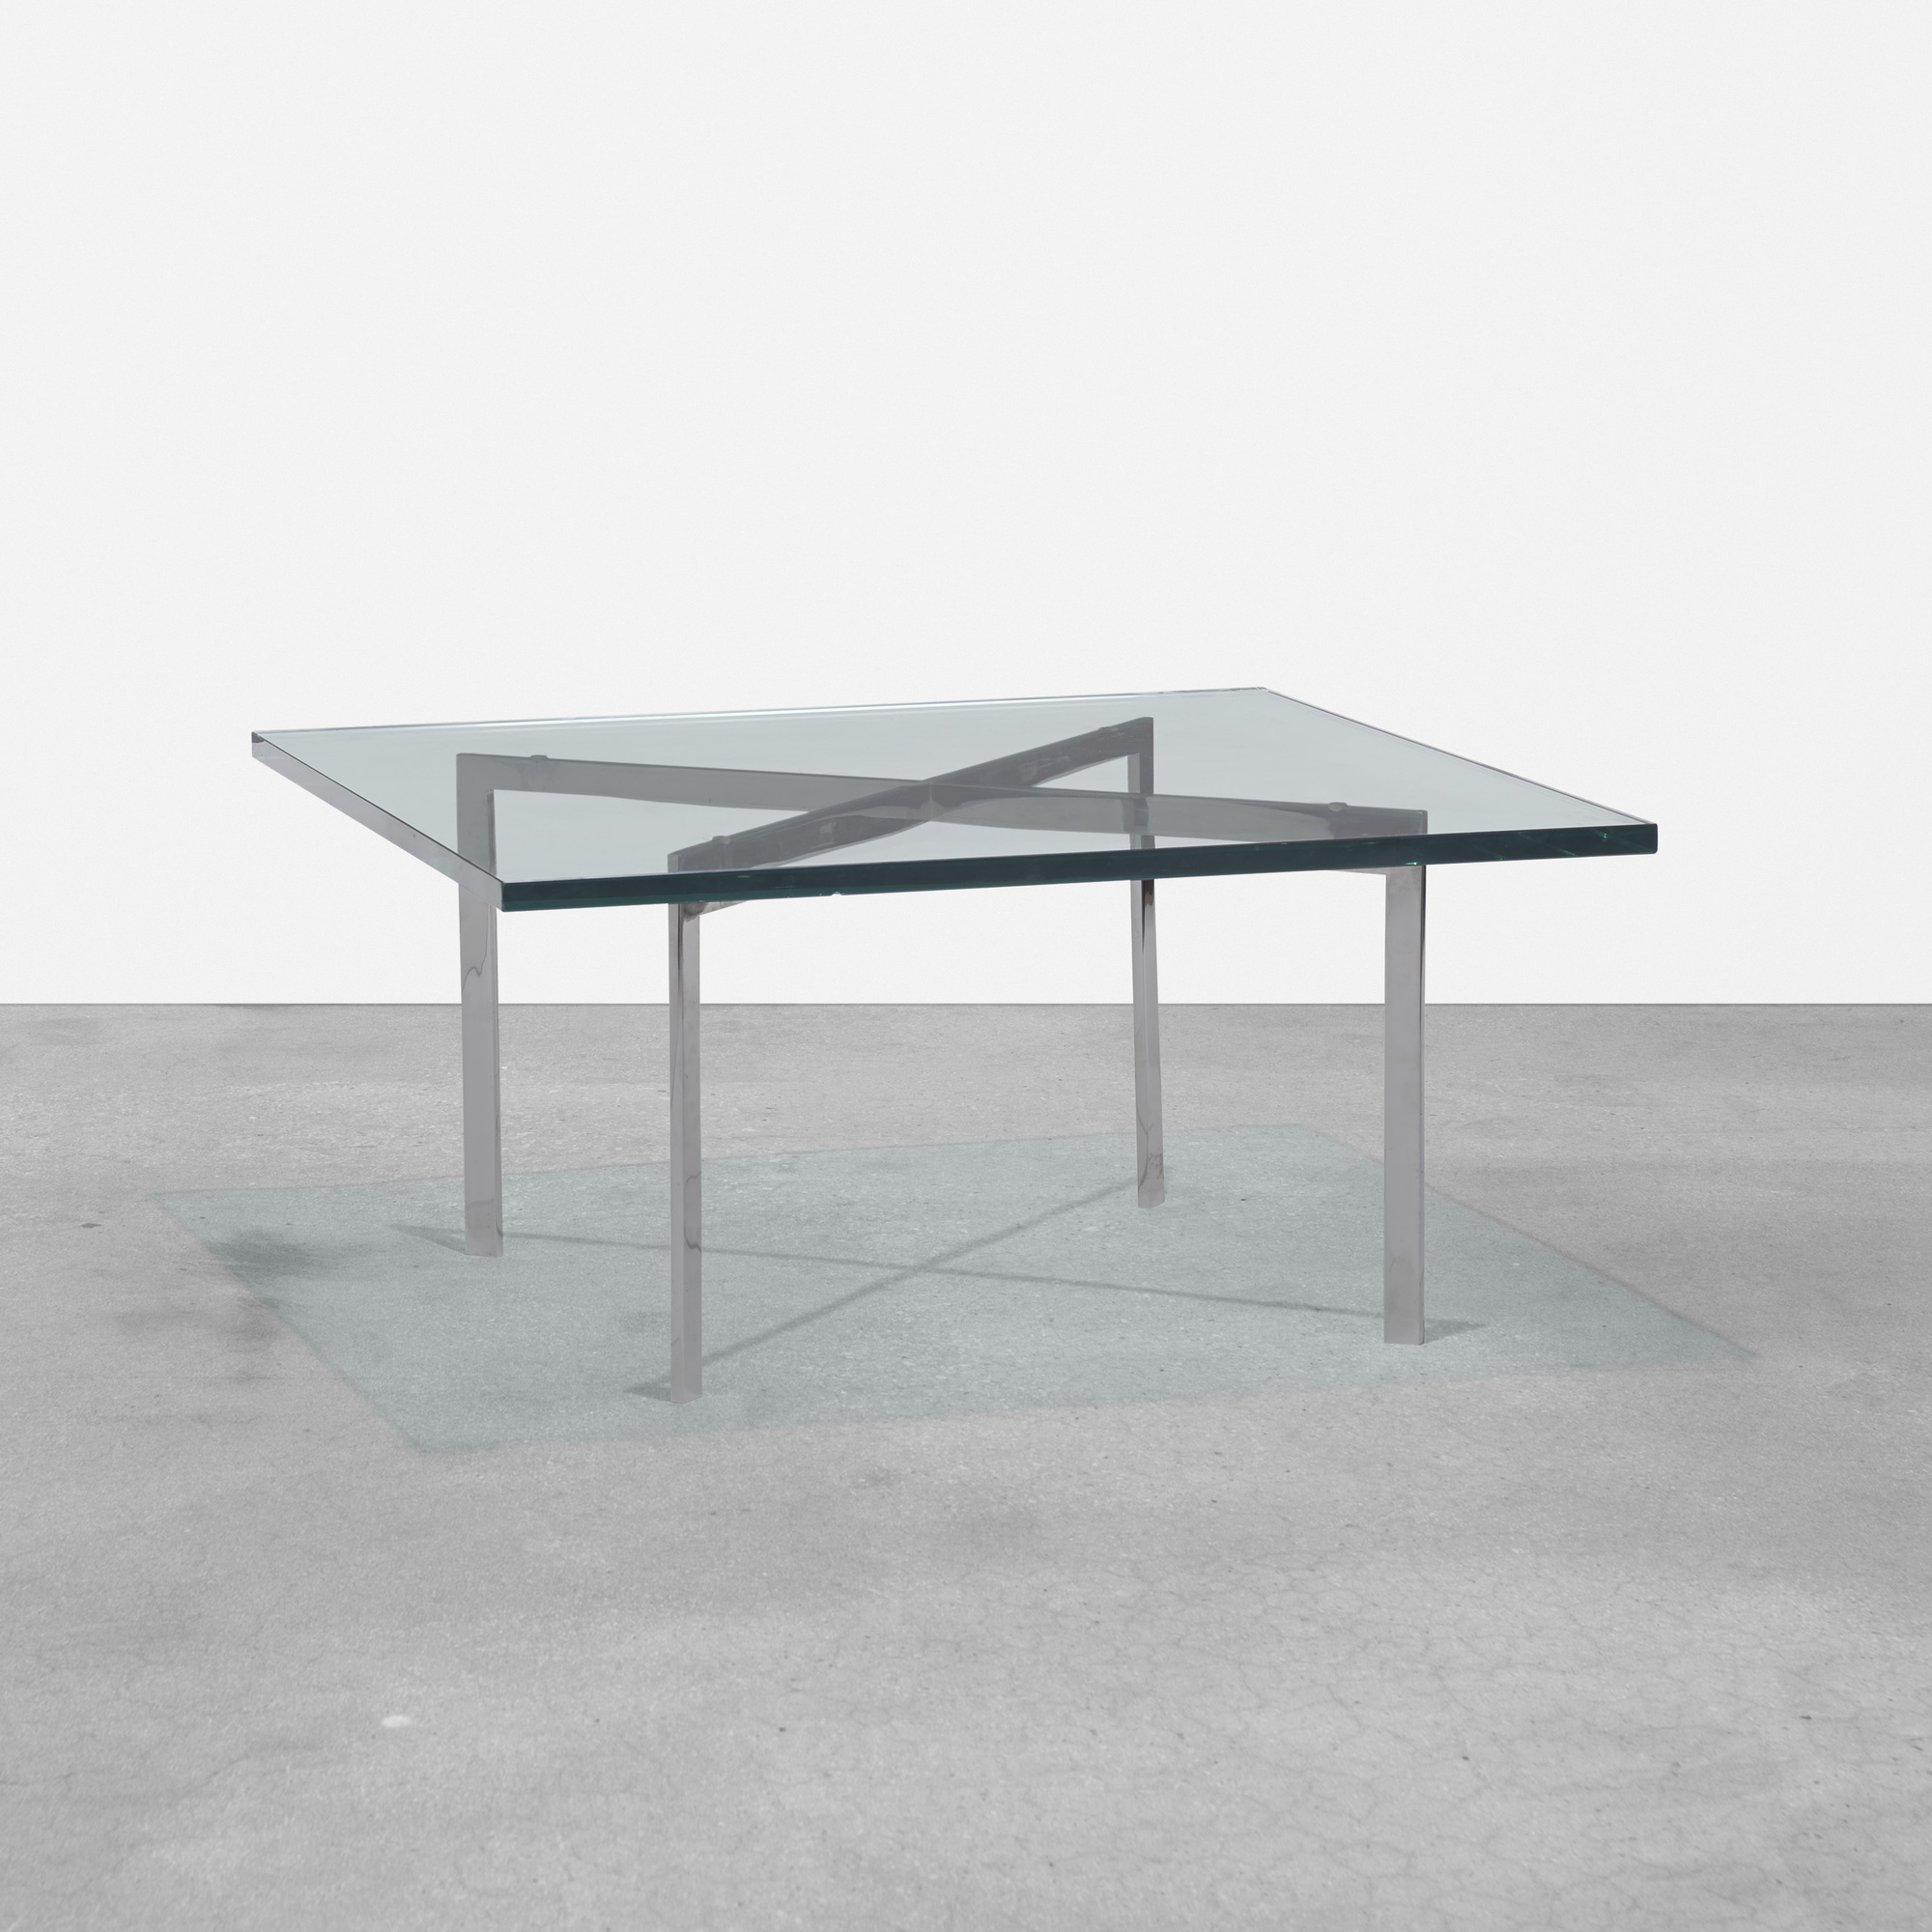 147: Ludwig Mies van der Rohe / custom Barcelona coffee table from 860 Lake Shore Drive, Chicago (1 of 3)